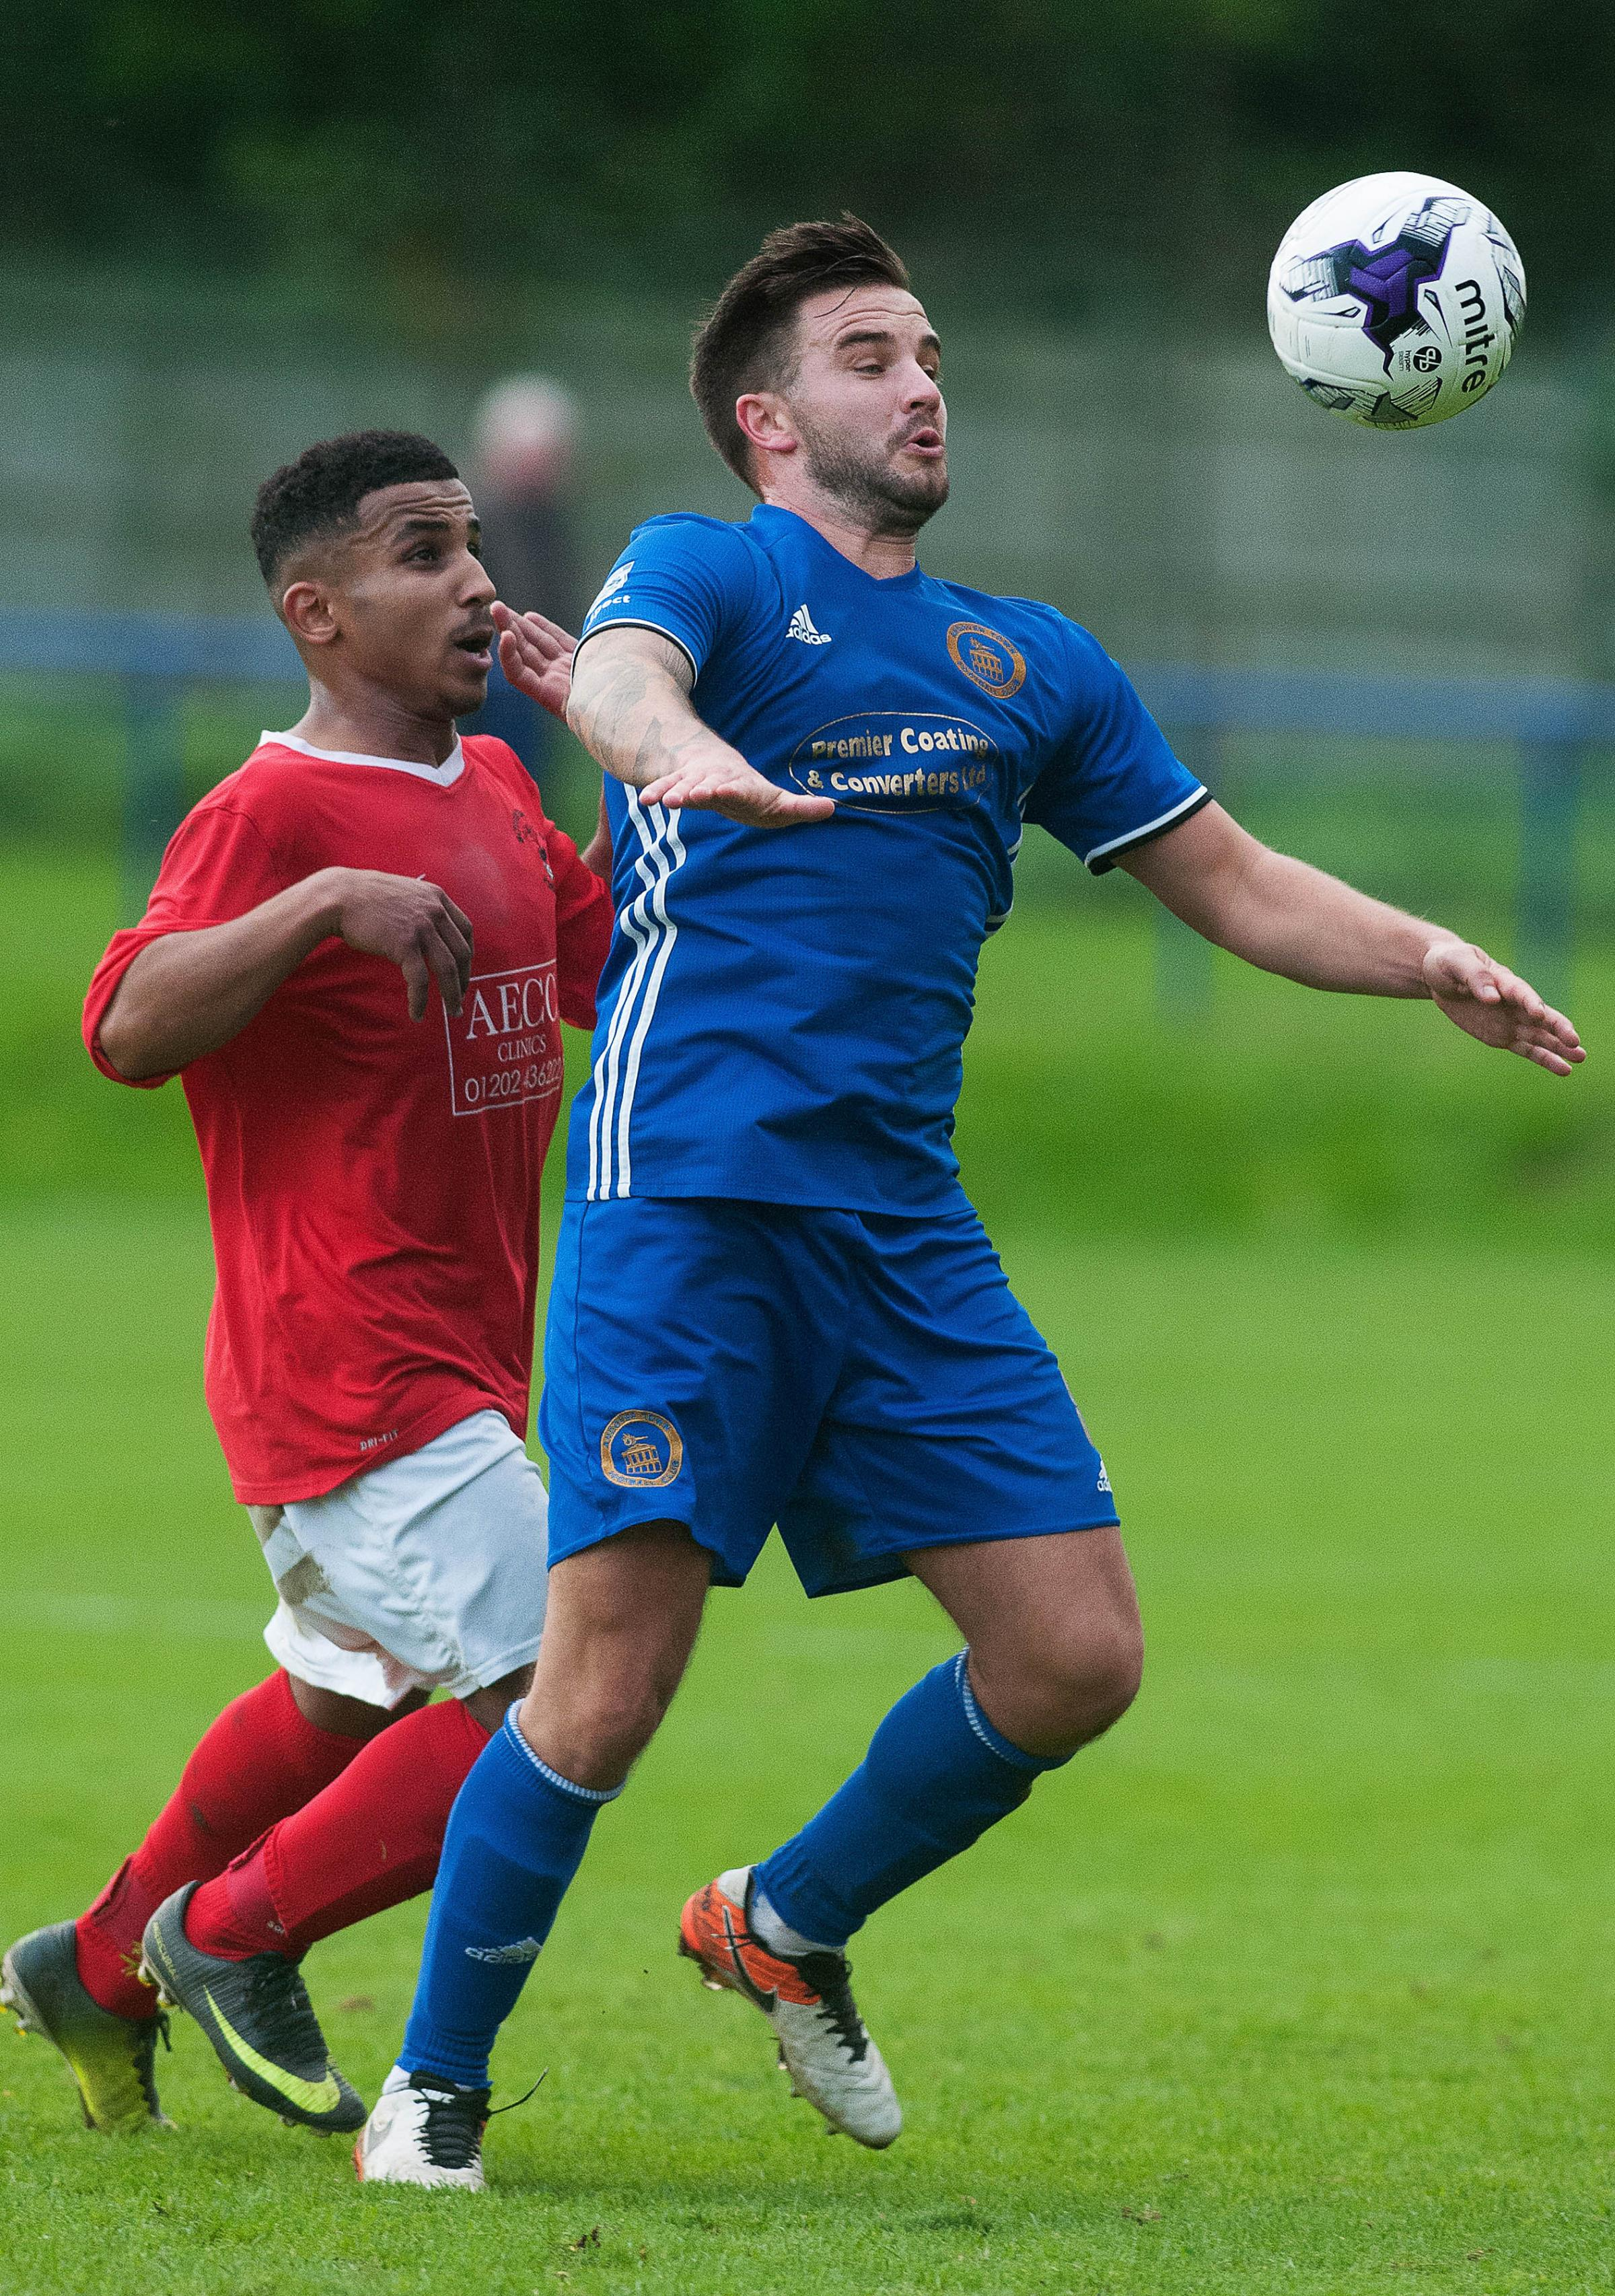 Andover Town's Michael Hubbard scored in their win over Portland United Picture Andy Brooks